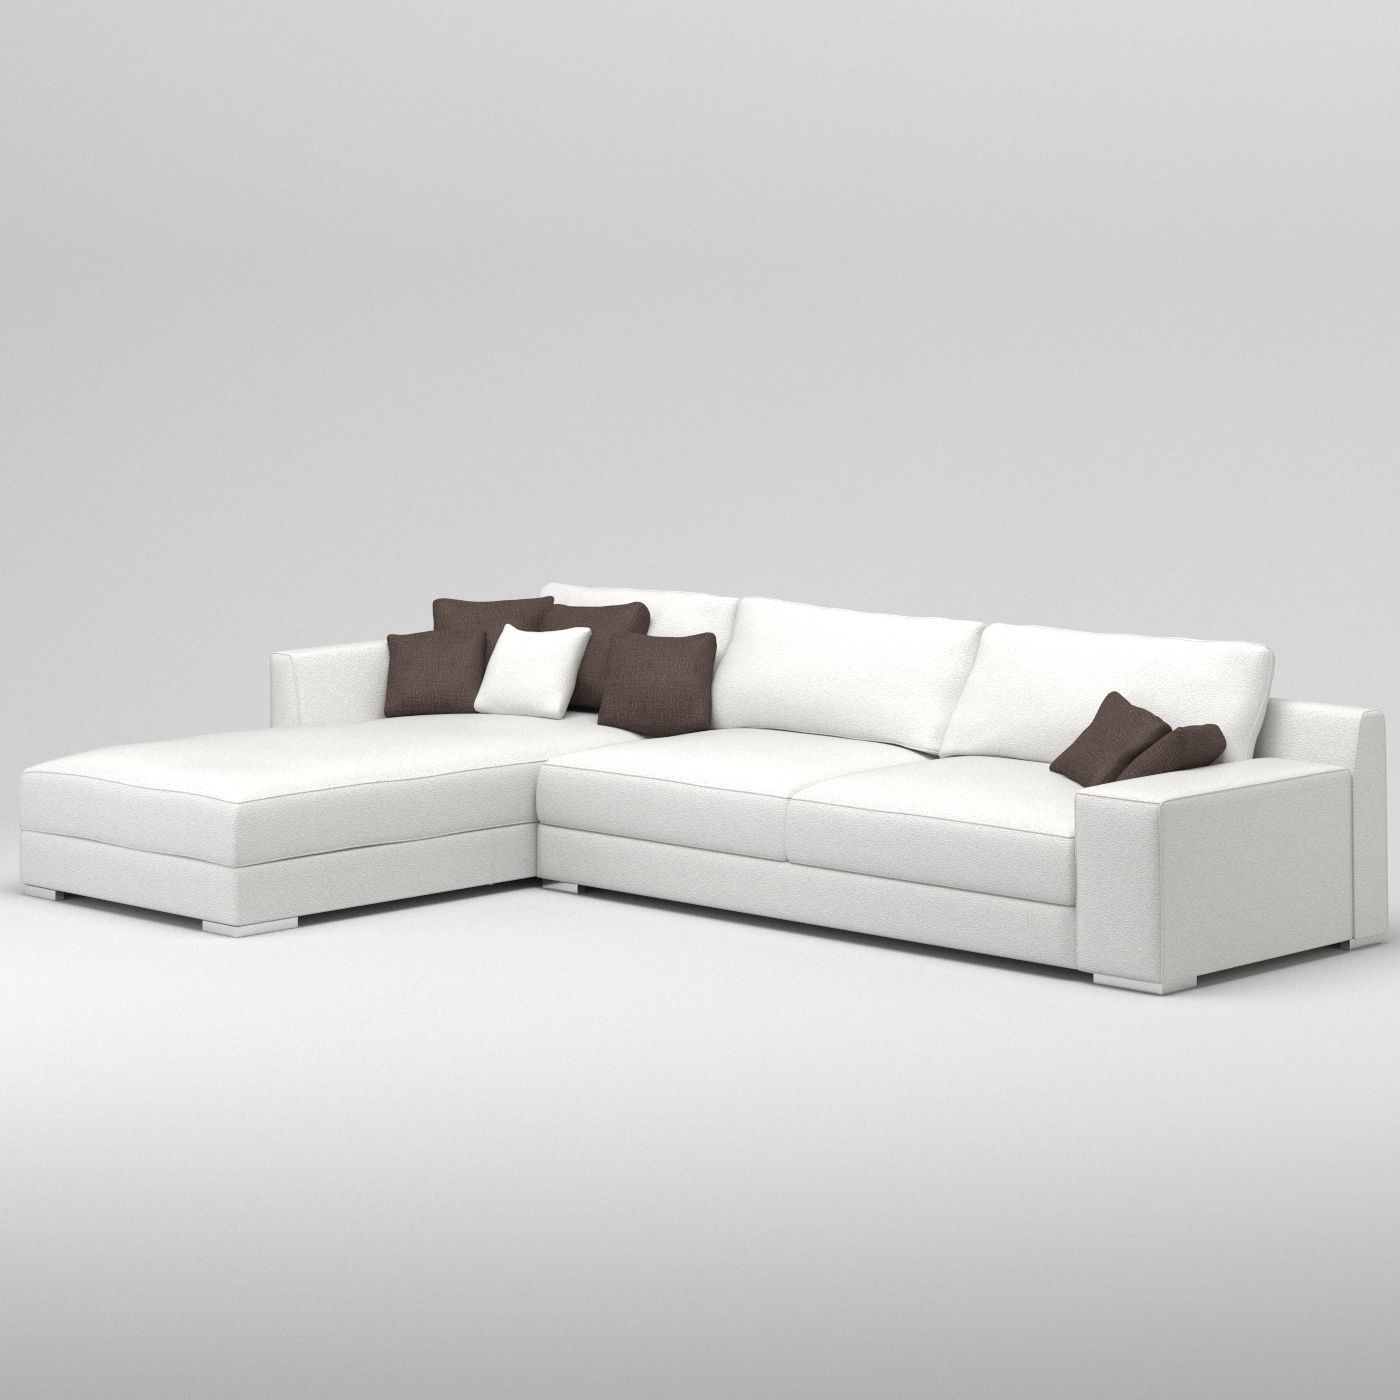 Recent Furniture : Couchtuner Queen Sugar Sectional Sofa Greenville Sc In Sectional Sofas In Greenville Sc (View 8 of 15)